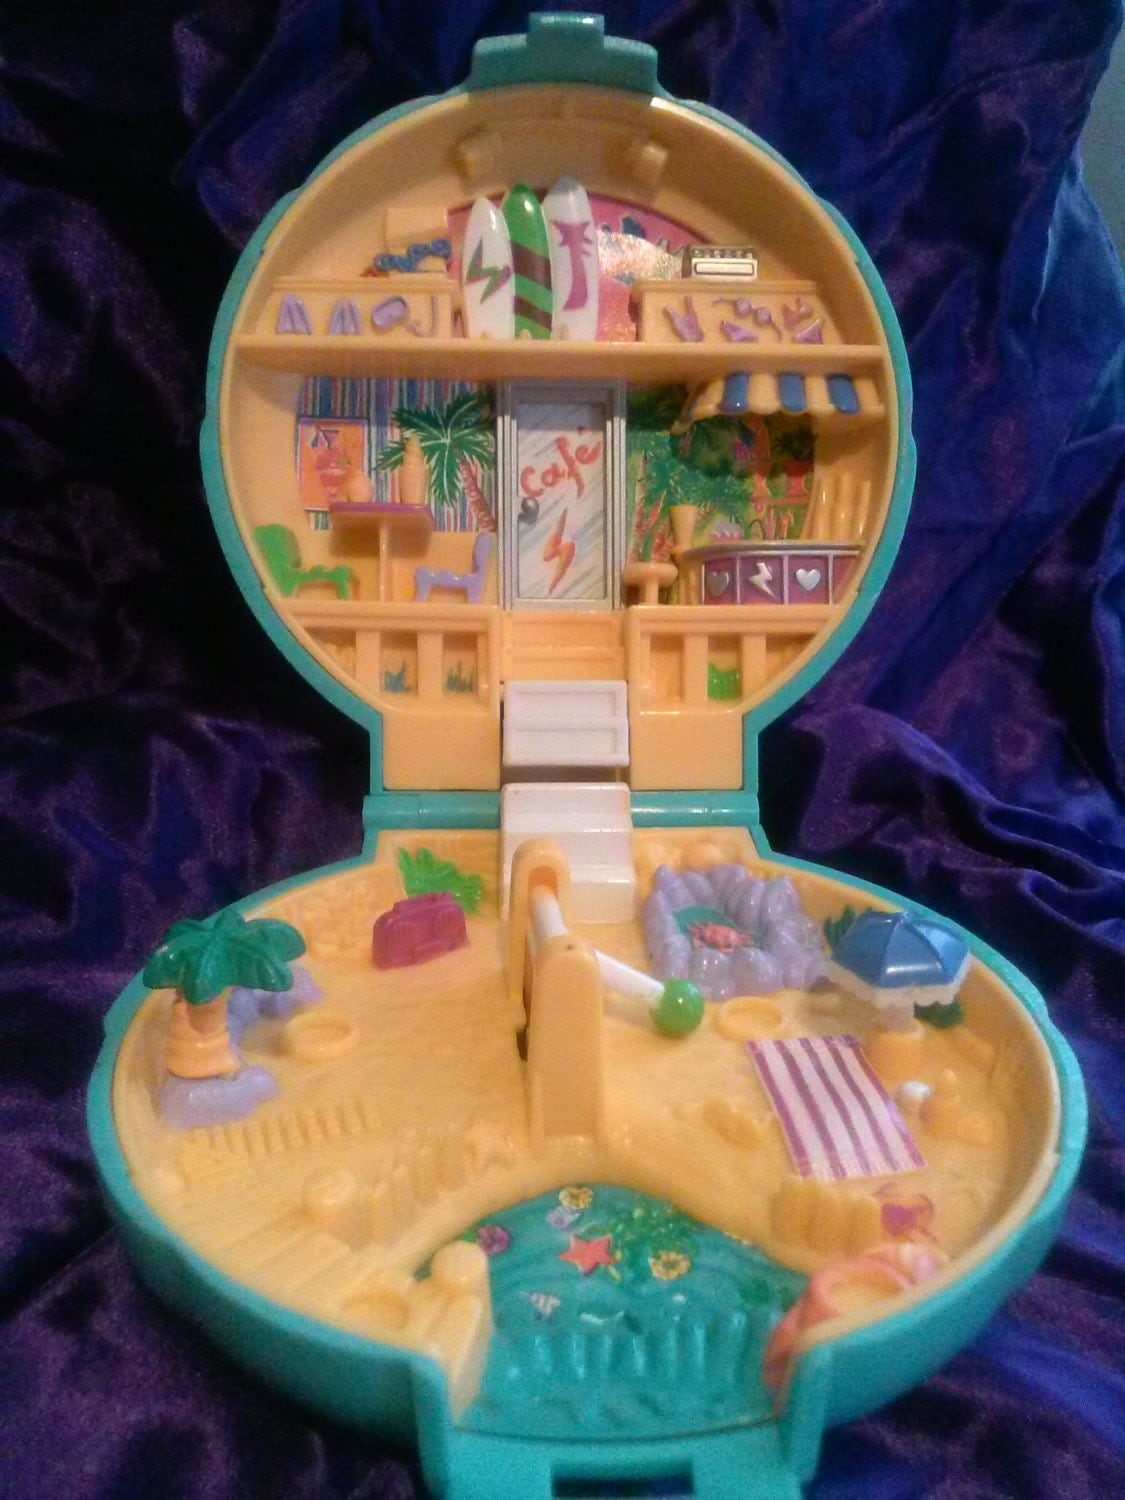 Polly Pockets For Sale: Vintage Polly Pocket Cafe Beach Seashell Compact Play Toy Blue